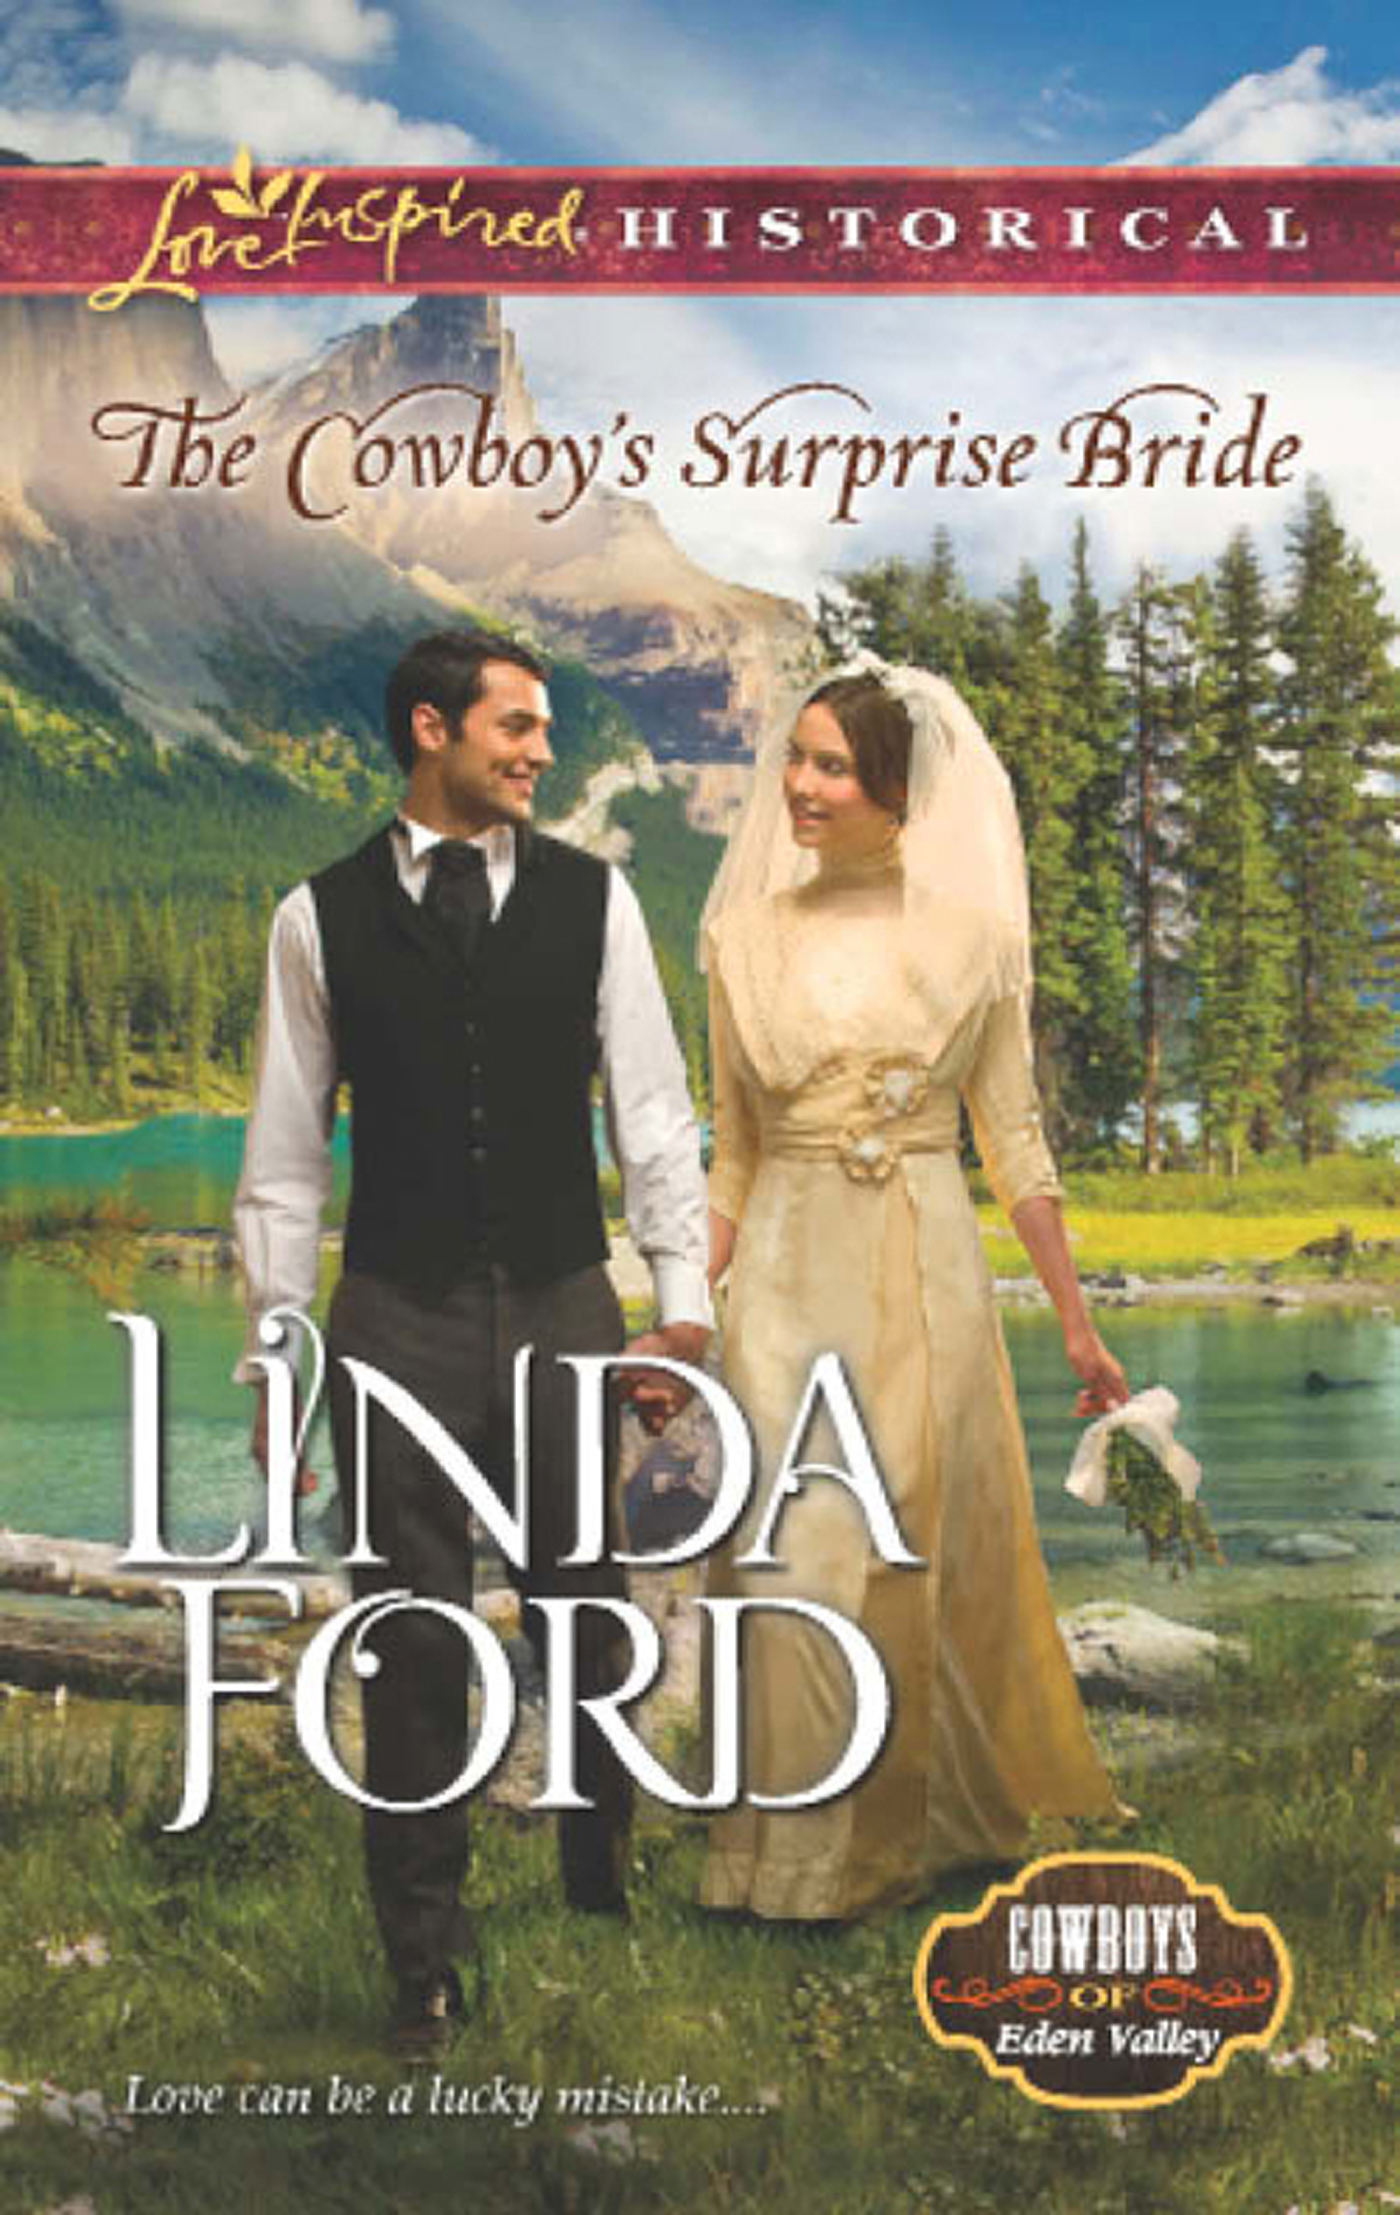 The Cowboy's Surprise Bride (Mills & Boon Love Inspired Historical) (Cowboys of Eden Valley - Book 1)